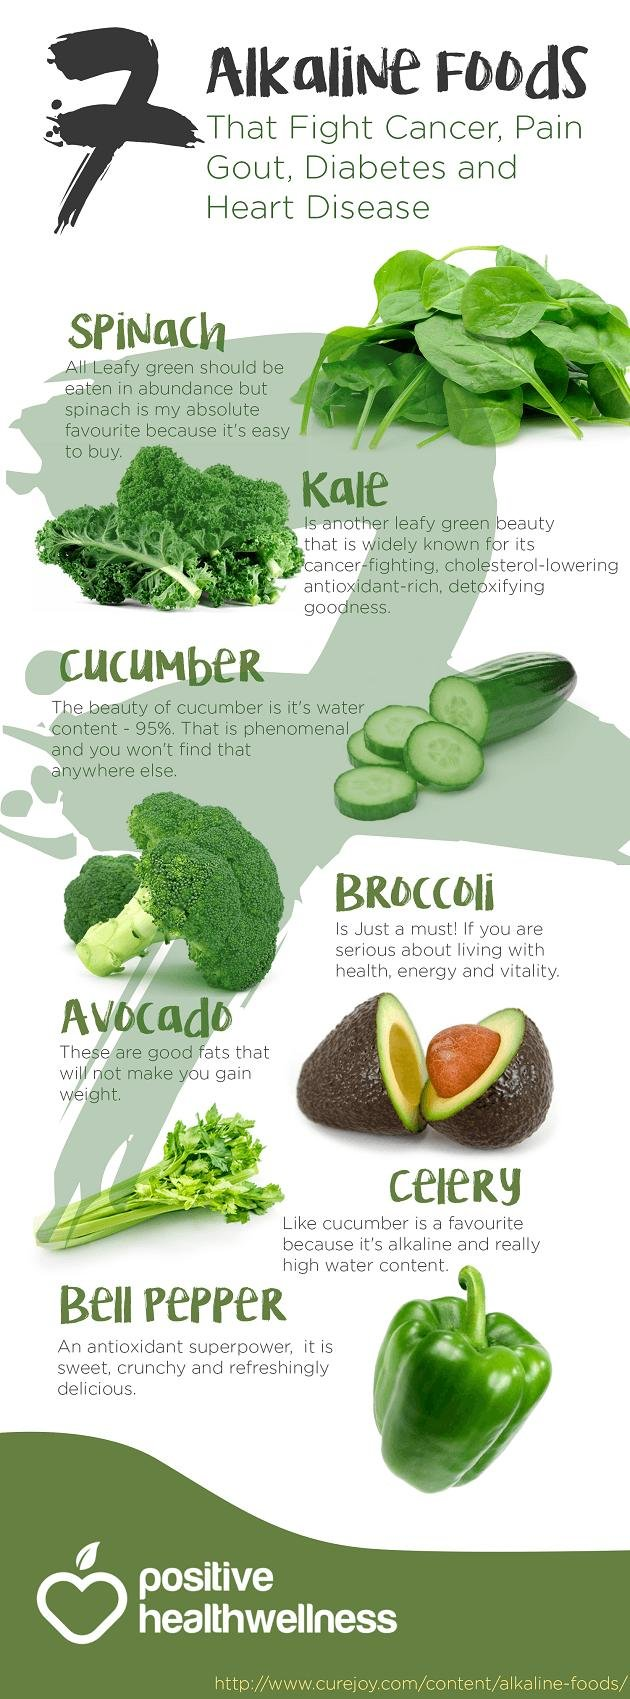 7 Alkaline Foods That Fight Cancer, Pain, Gout, Diabetes and Heart Disease – Infographic